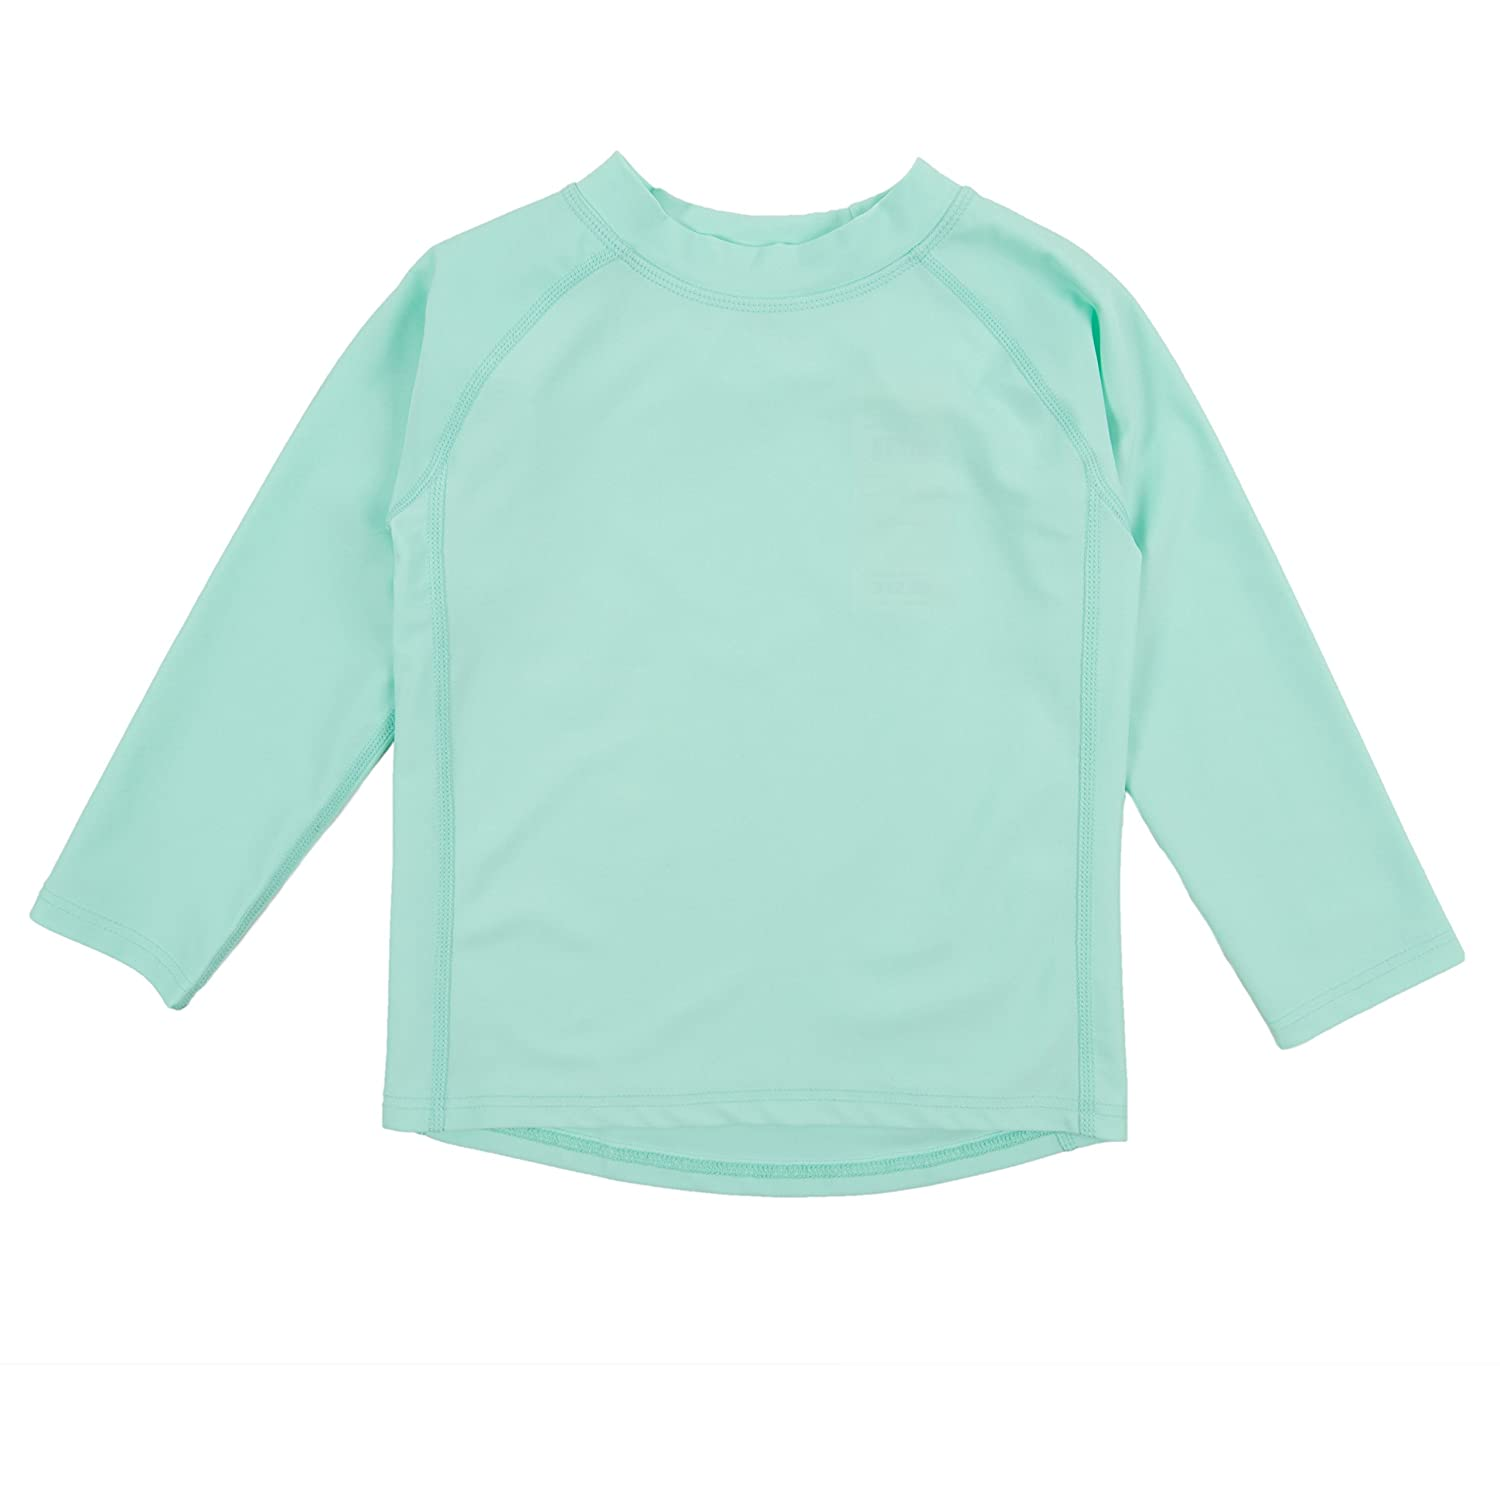 9d9efbc93 Amazon.com: Leveret Long Sleeve Baby Boys Girls Rash Guard Sun Protected  UPF + 50 Kids & Toddler Swim Shirt (12 Months-5 Toddler): Clothing